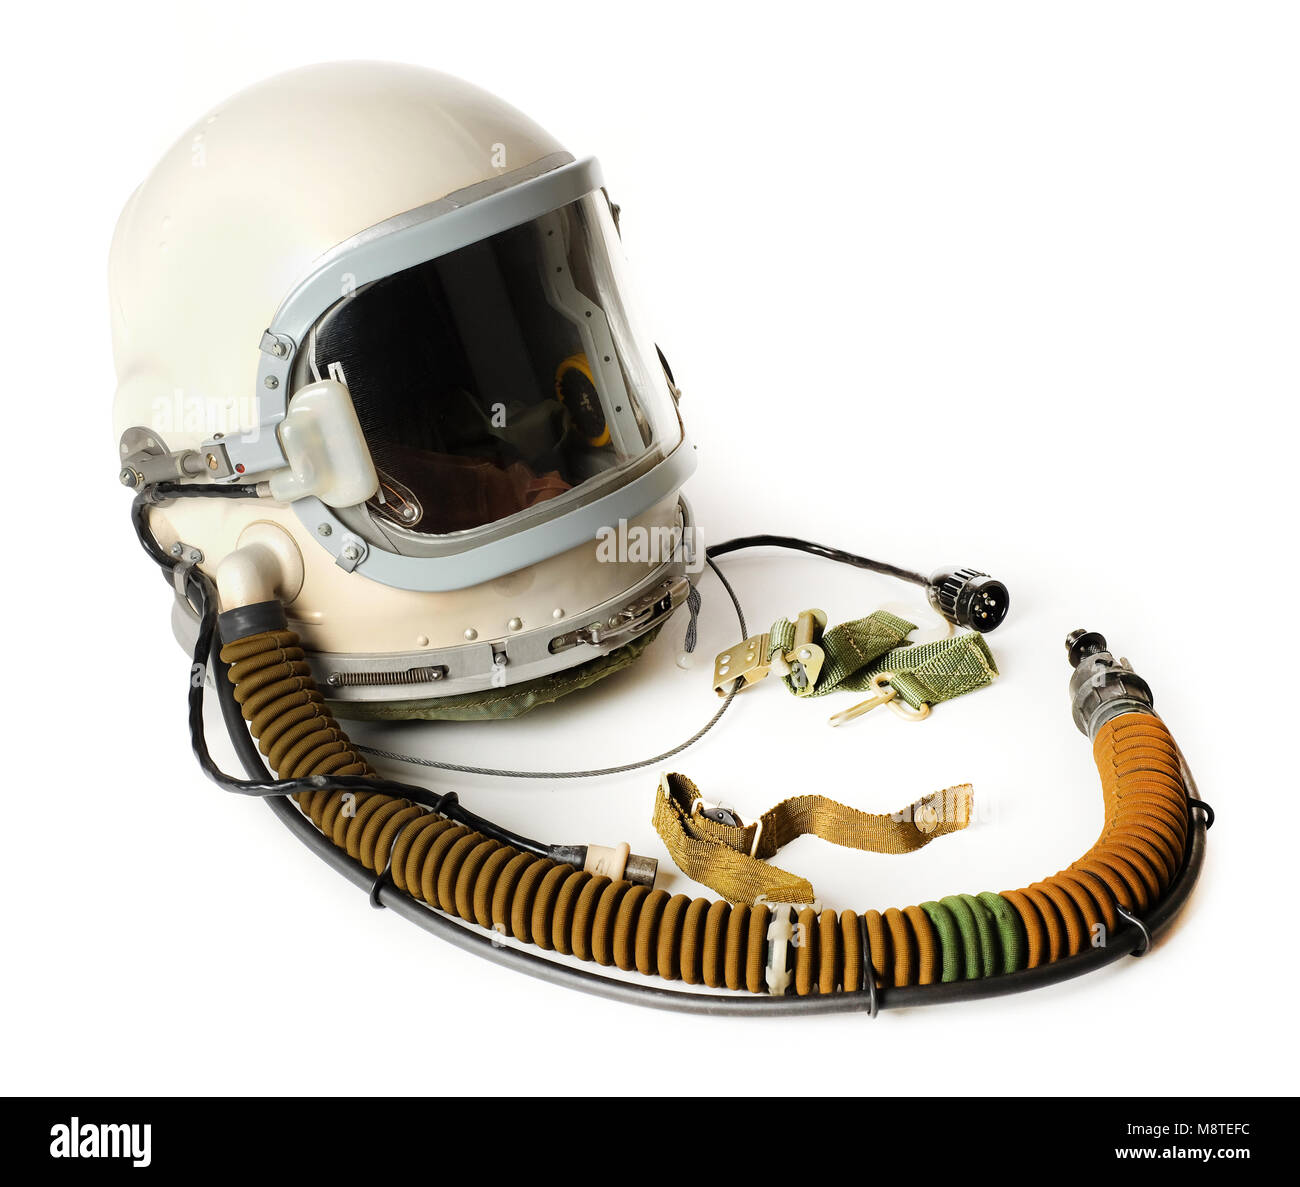 Russian high-altitude helmet (model 111-4MC) and accessories from 1973 used by the East-German Air Force in a Mikoyan - Stock Image